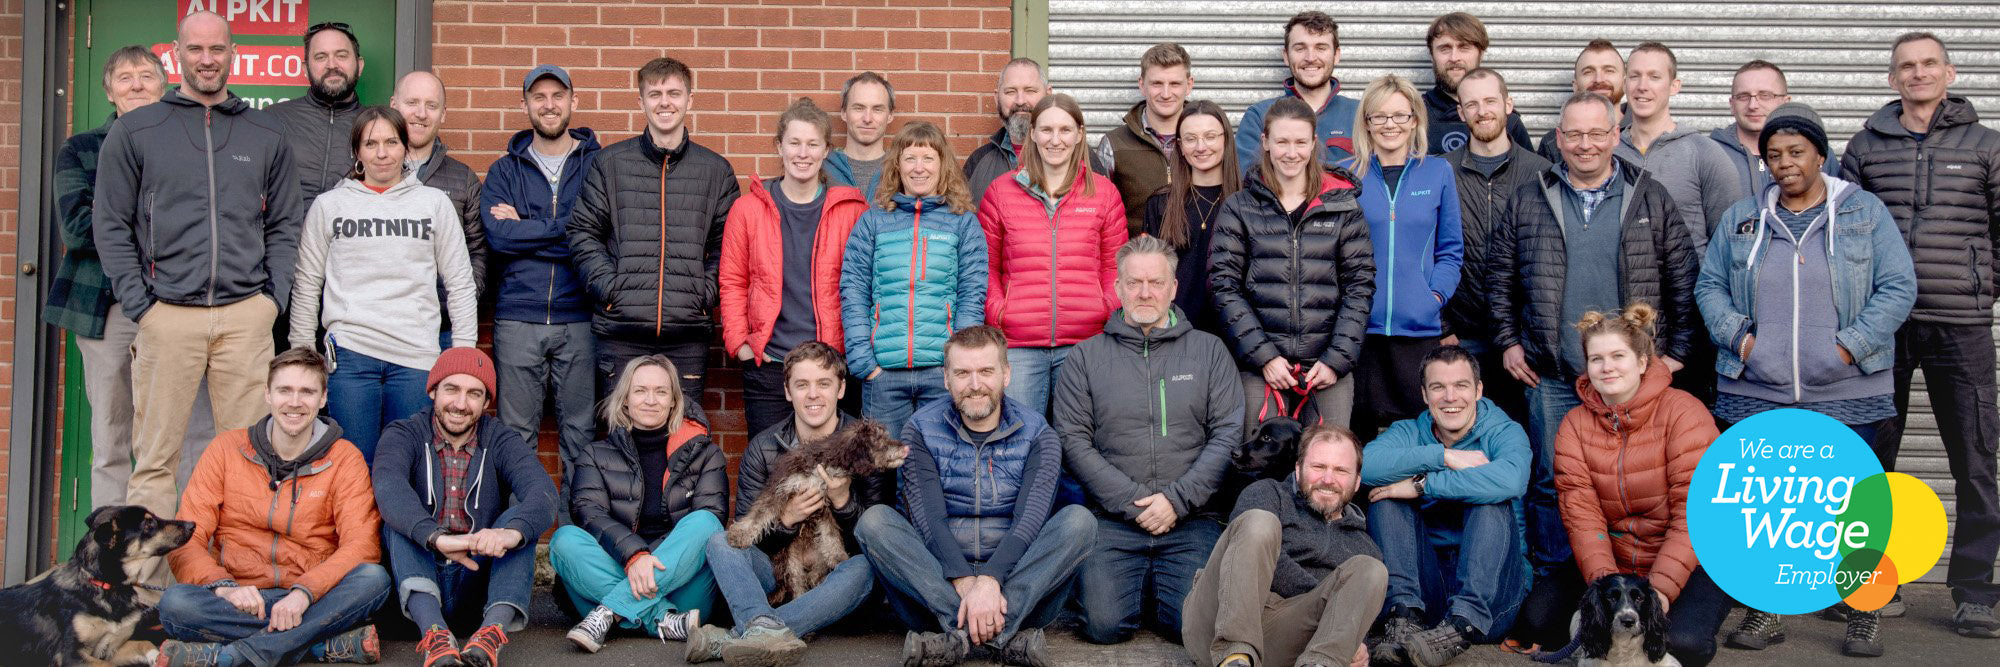 Alpkit Living Wage Team Shot